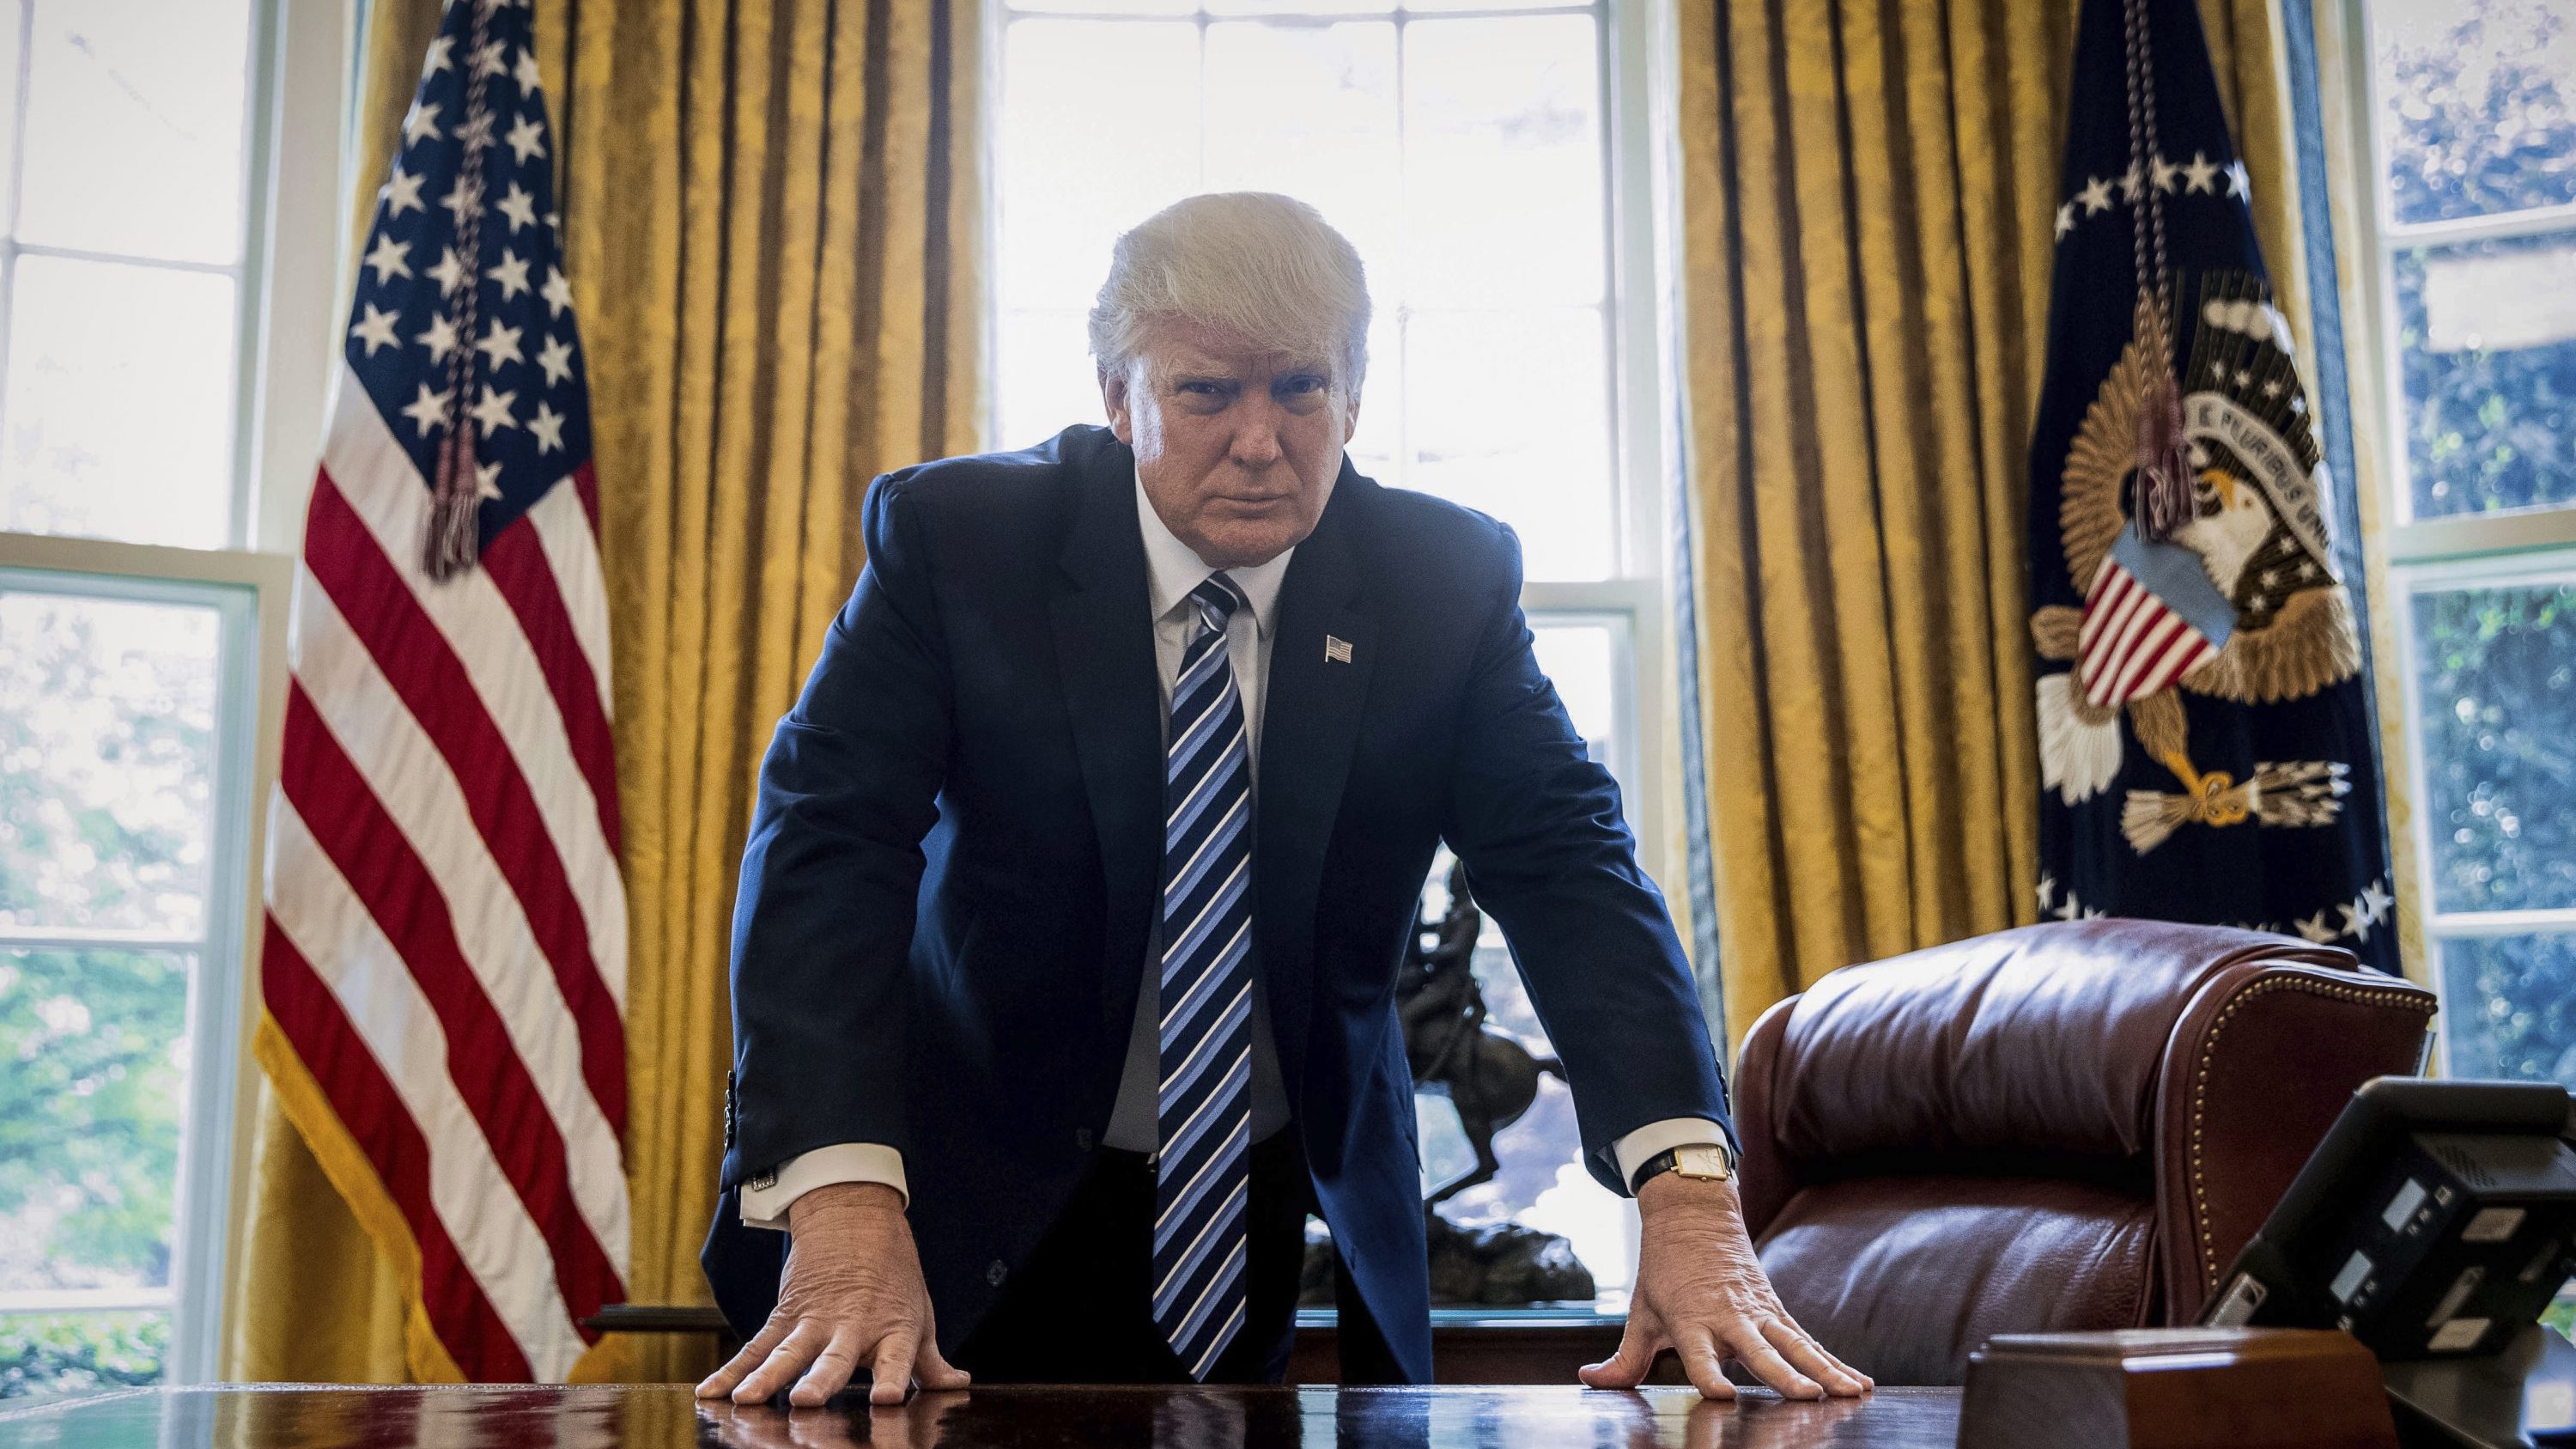 DAY 92 - In this April 21, 2017, file photo, President Donald Trump poses for a portrait in the Oval Office in Washington after an interview with The Associated Press.